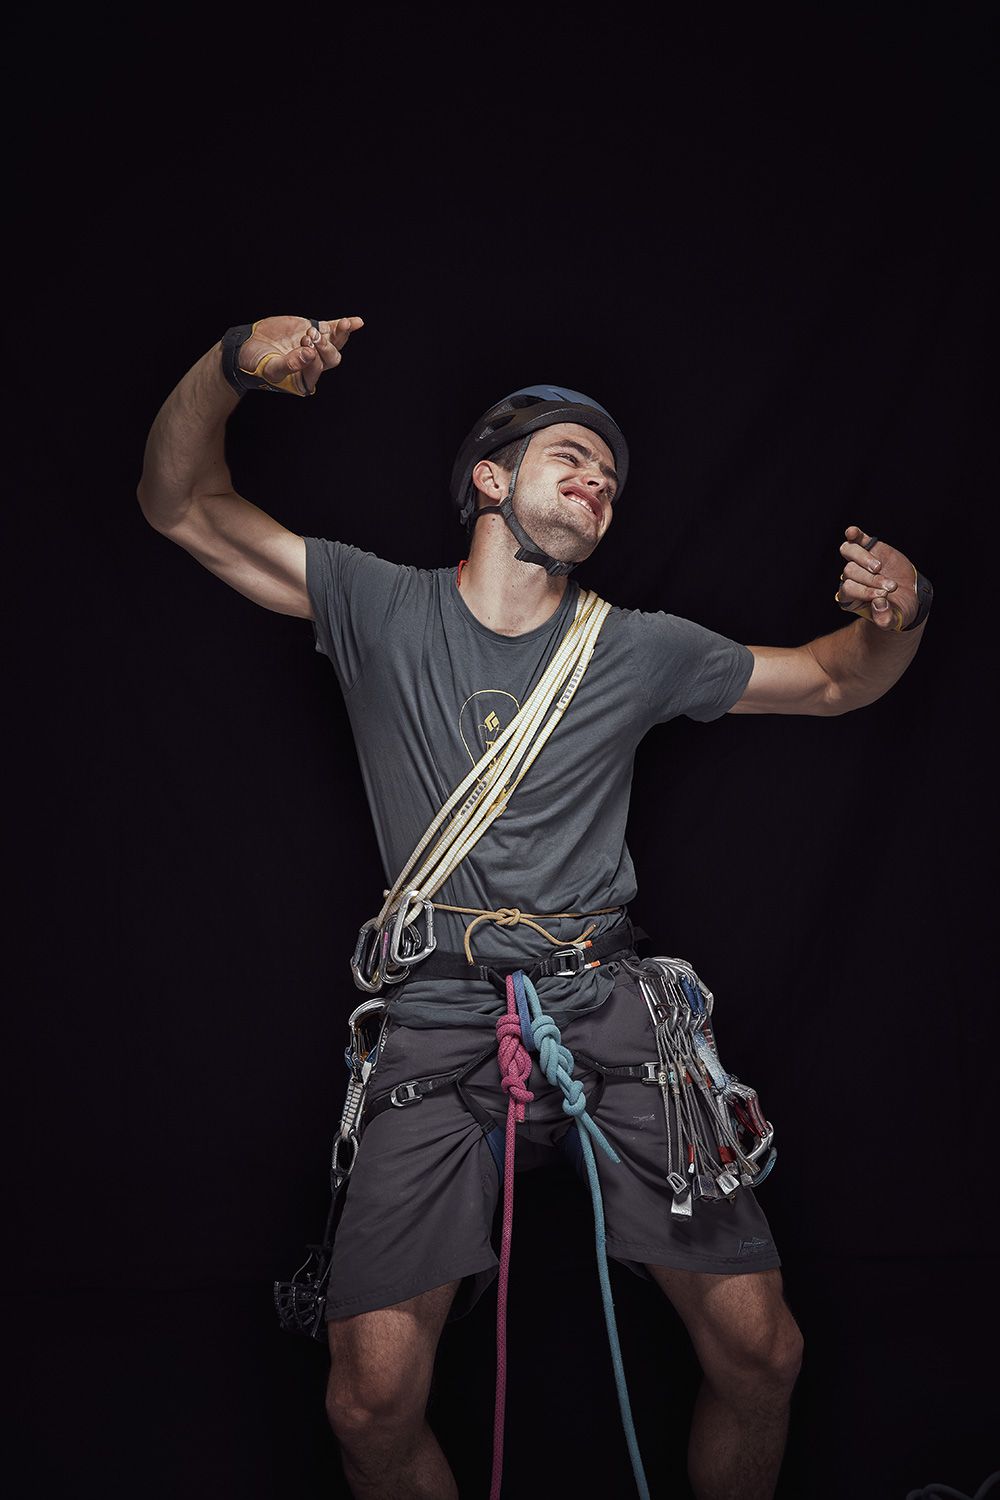 Portrait of traditional climber in studio